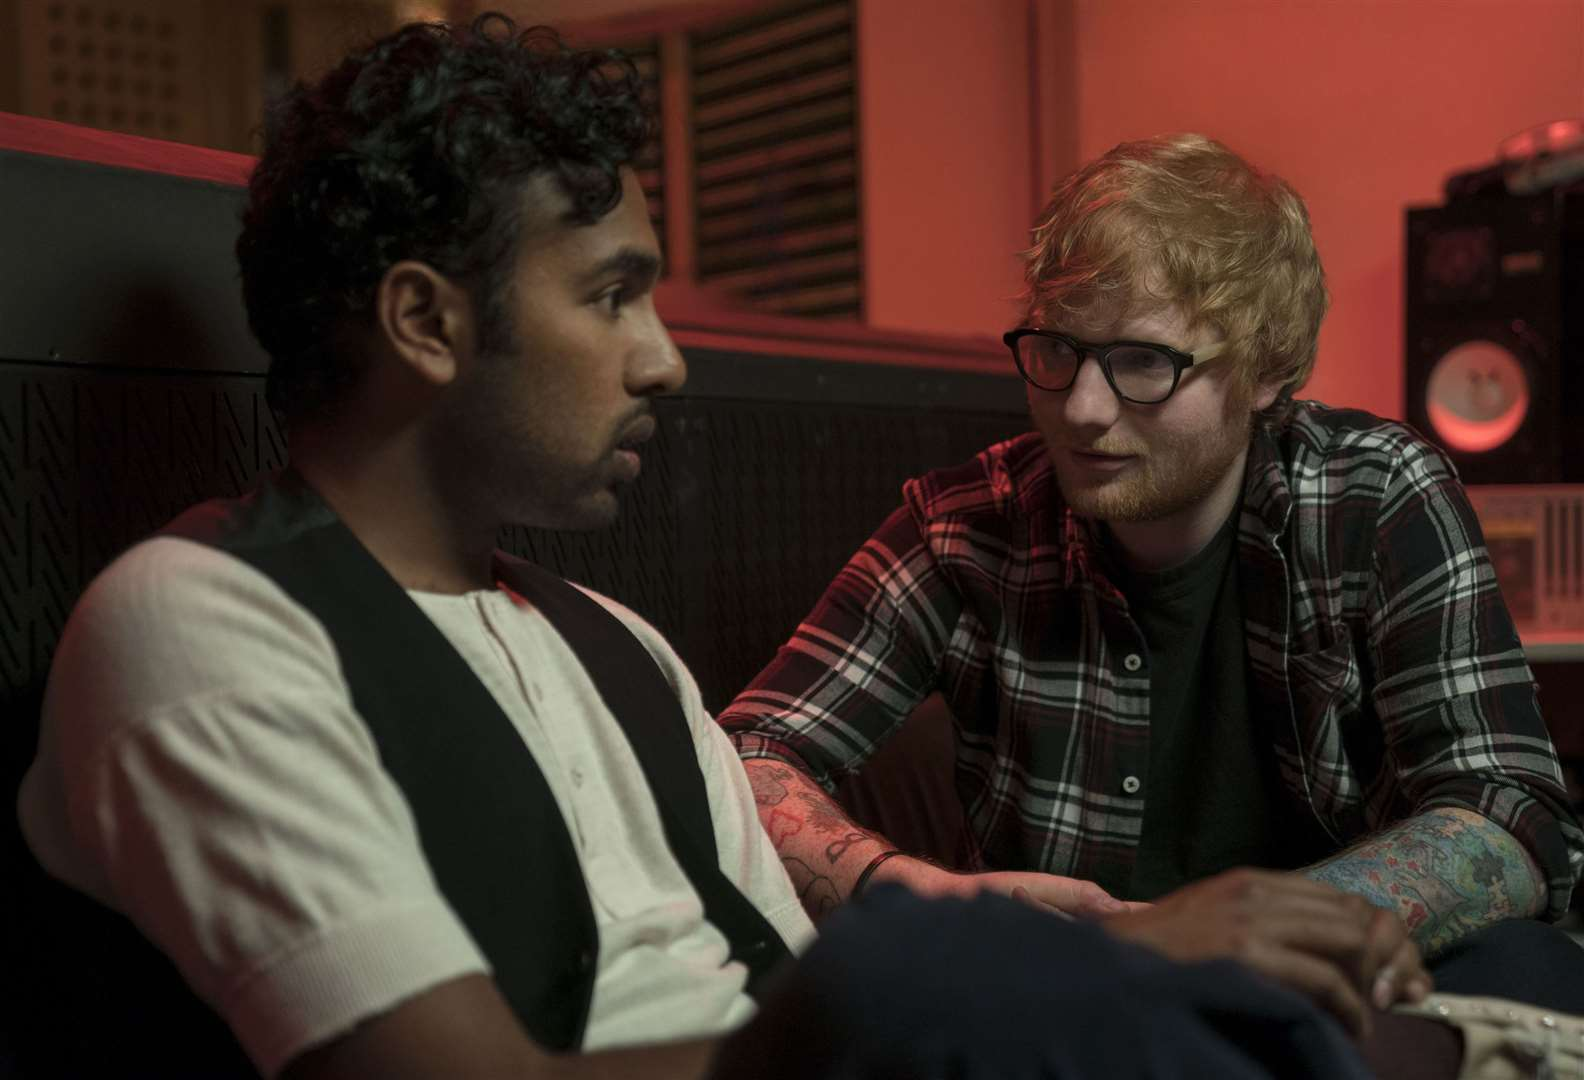 Himesh Patel and Ed Sheeran star in the Richard Curtis movie Yesterday - a film which imagines a world without the Beatles